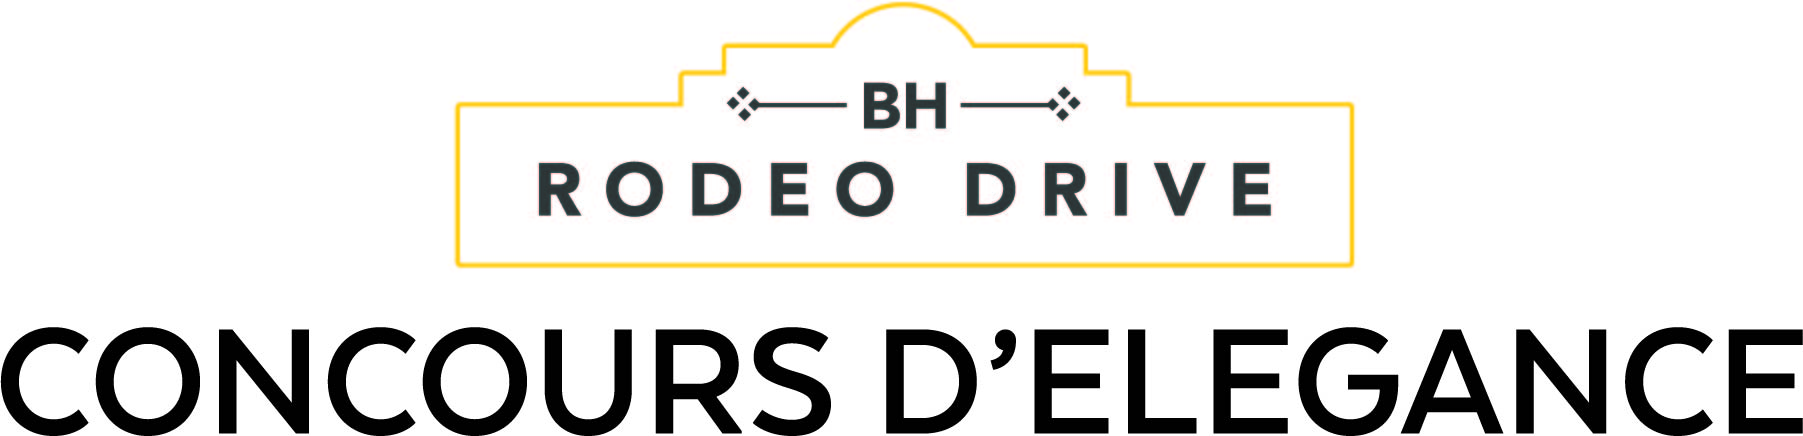 26th Annual Rodeo Drive Concours d'Elegance 2019